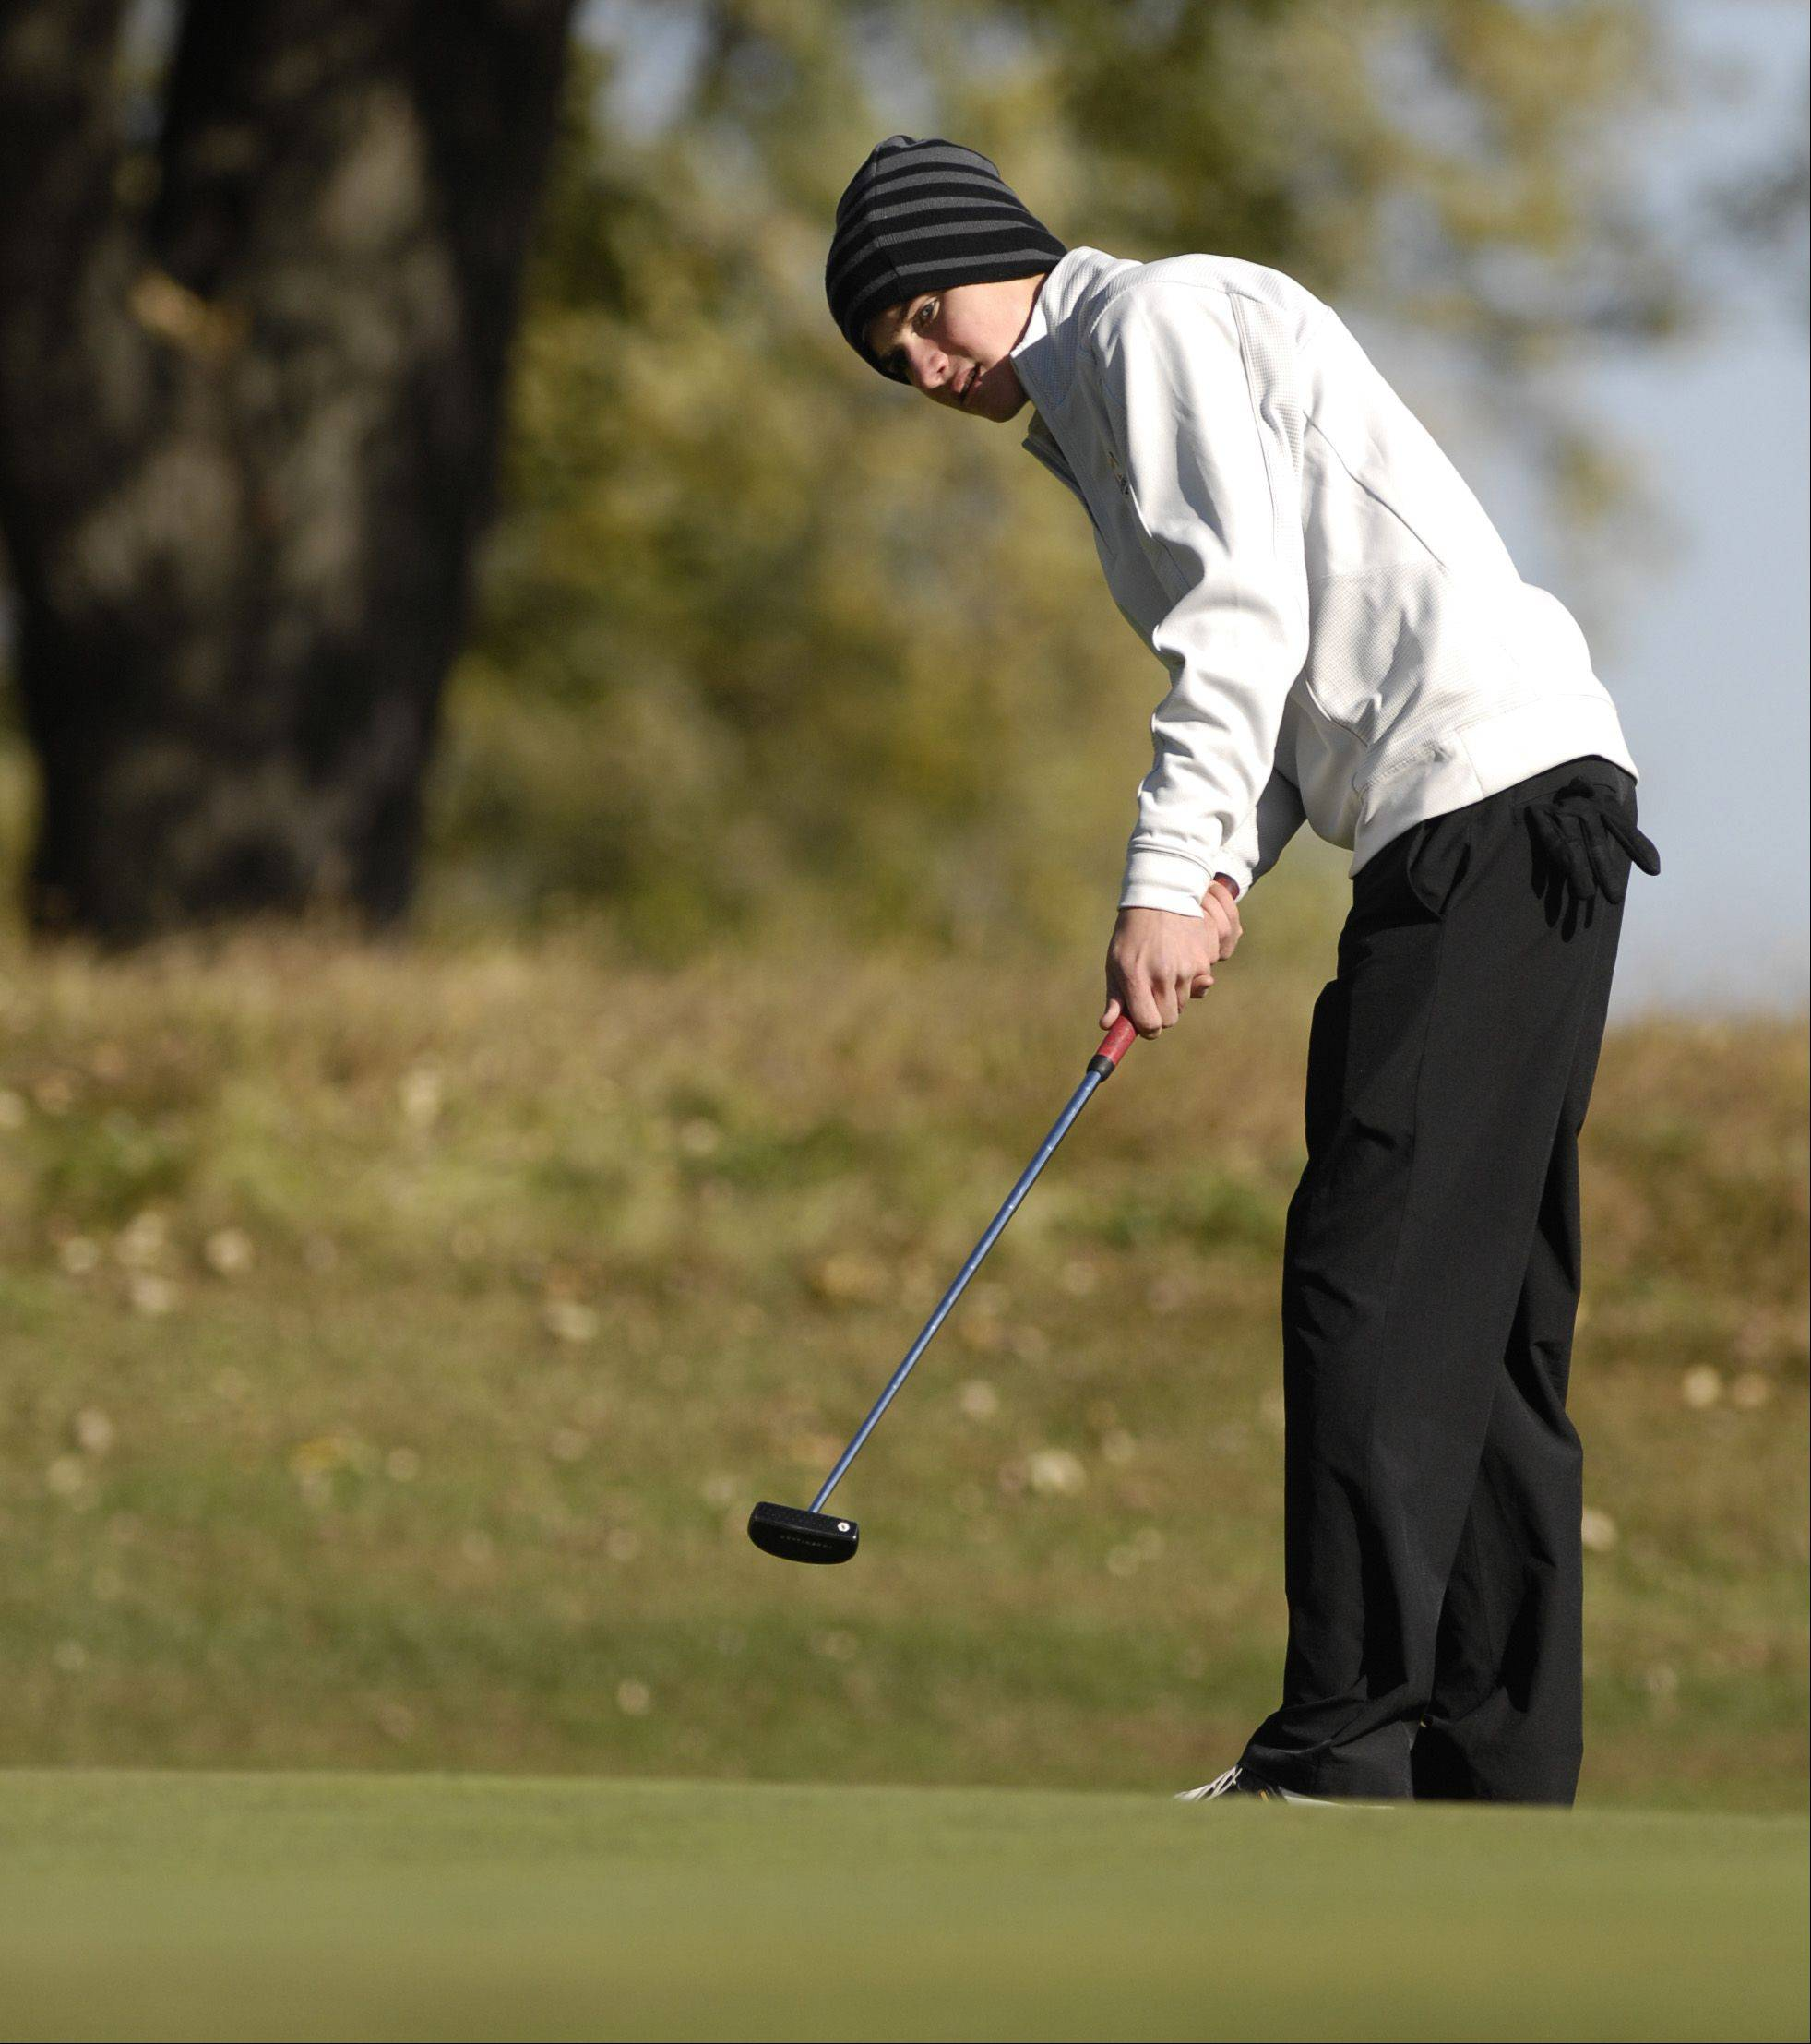 Jordan Less of York putts during the St. Charles East boys varsity golf sectional at St. Andrews Golf Club in West Chicago, Monday.